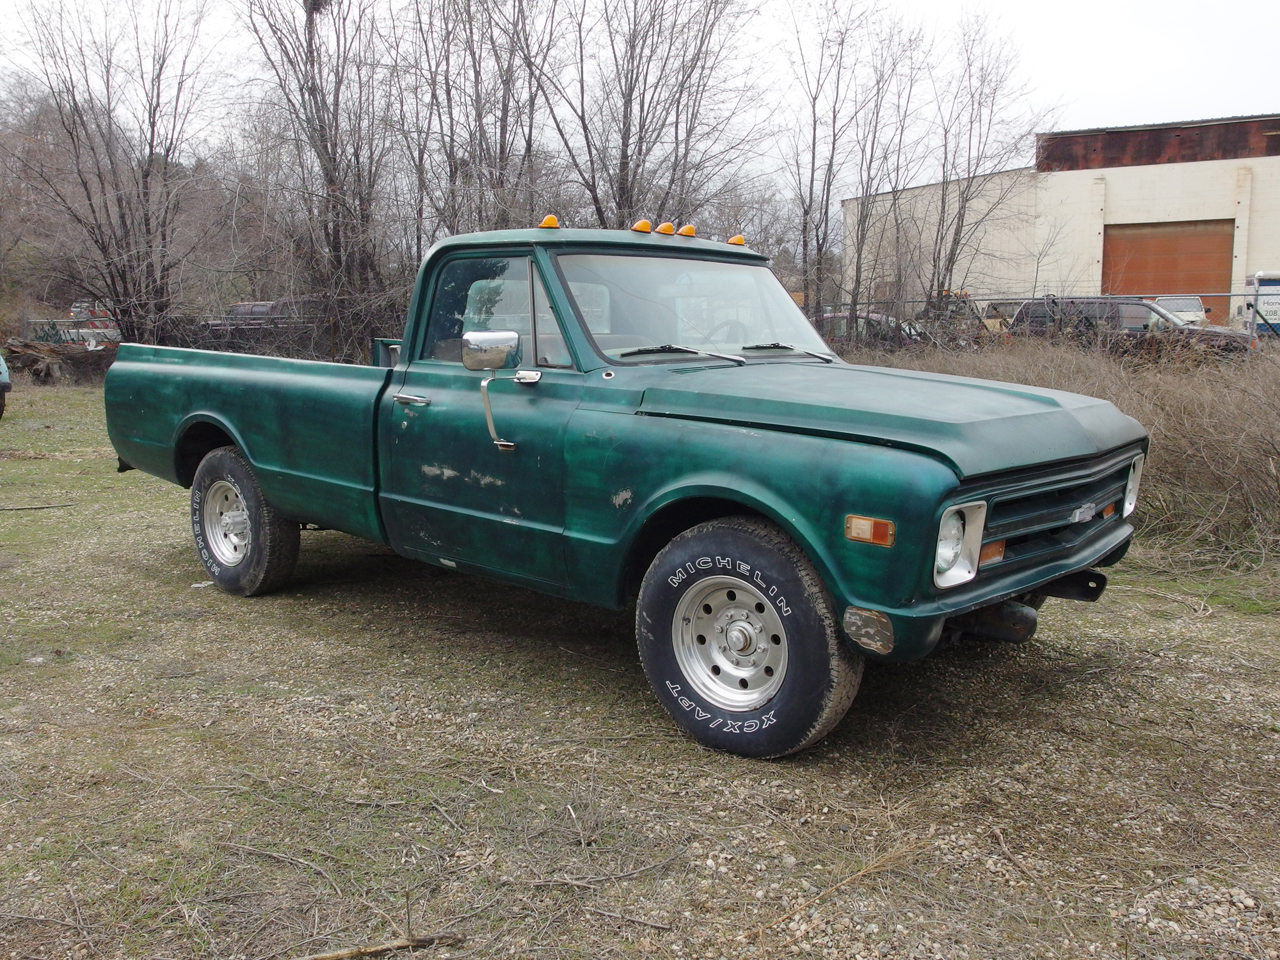 All Chevy chevy 1967 : Chevy 3/4-ton 20 Series Truck for sale